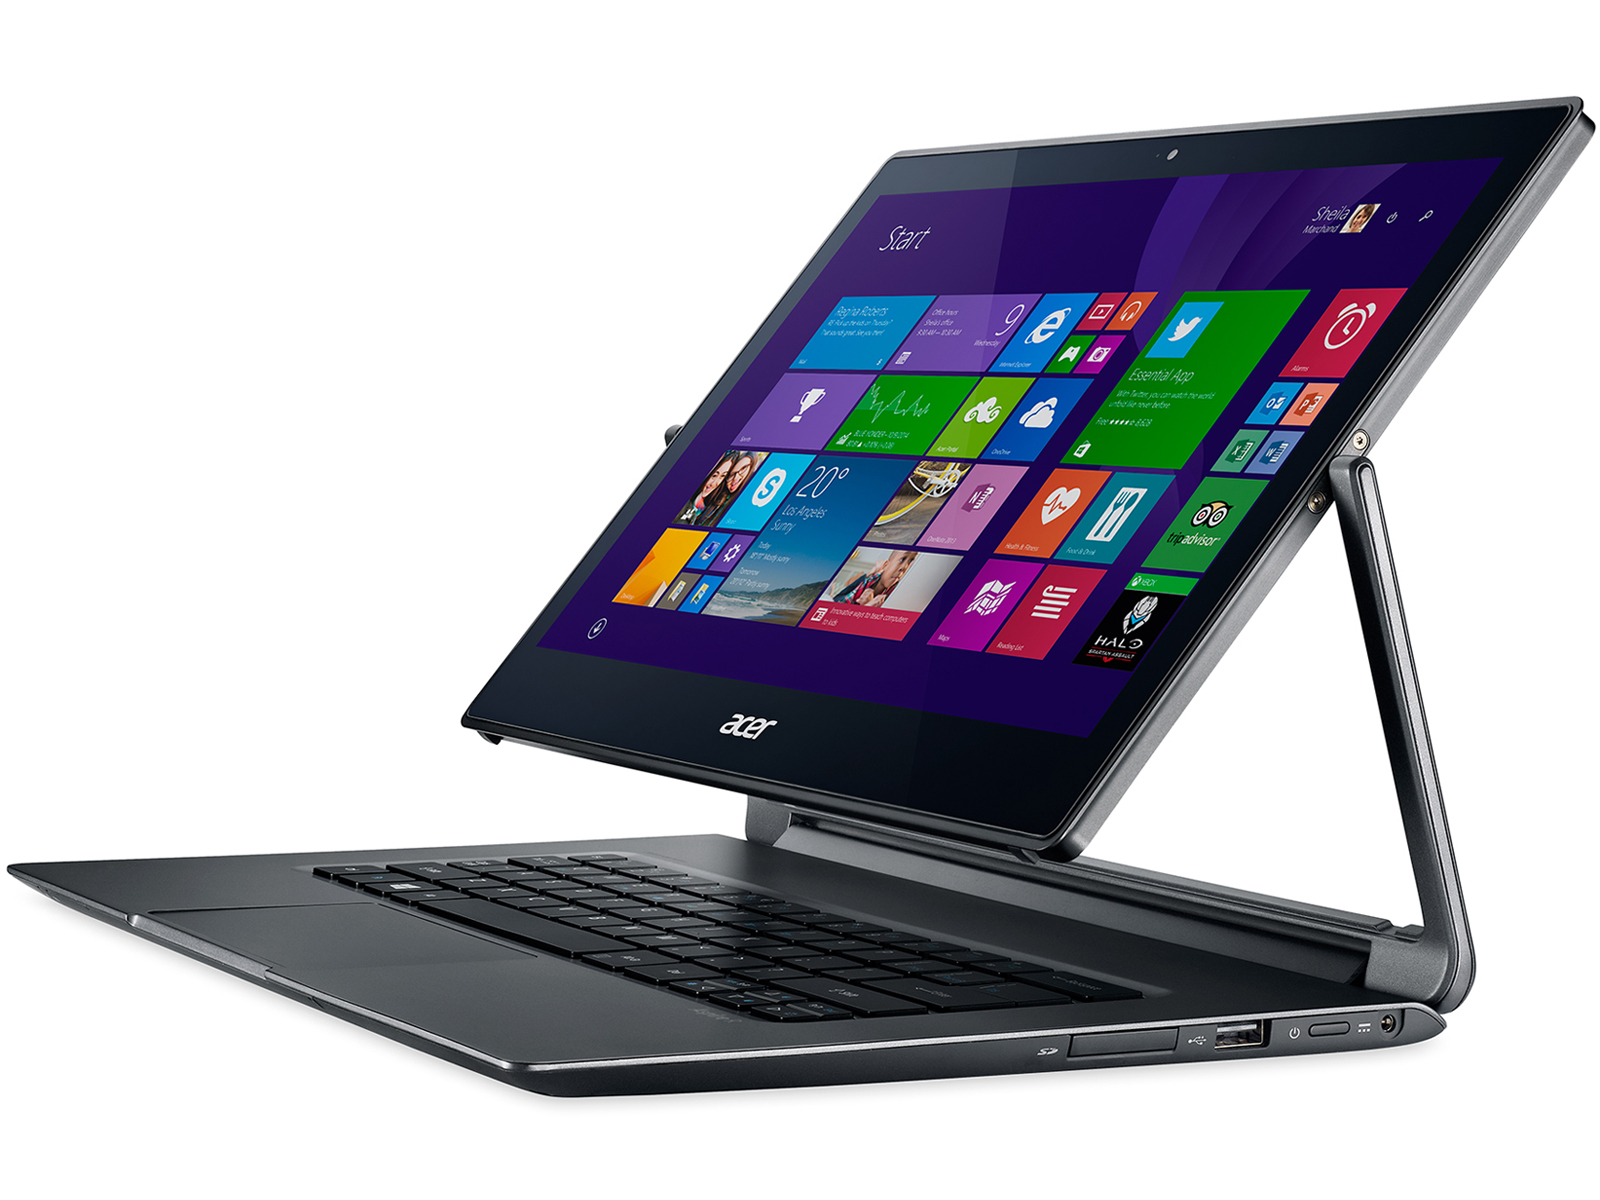 Acer Extensa 5210 Notebook Intel Display Drivers for Windows 7